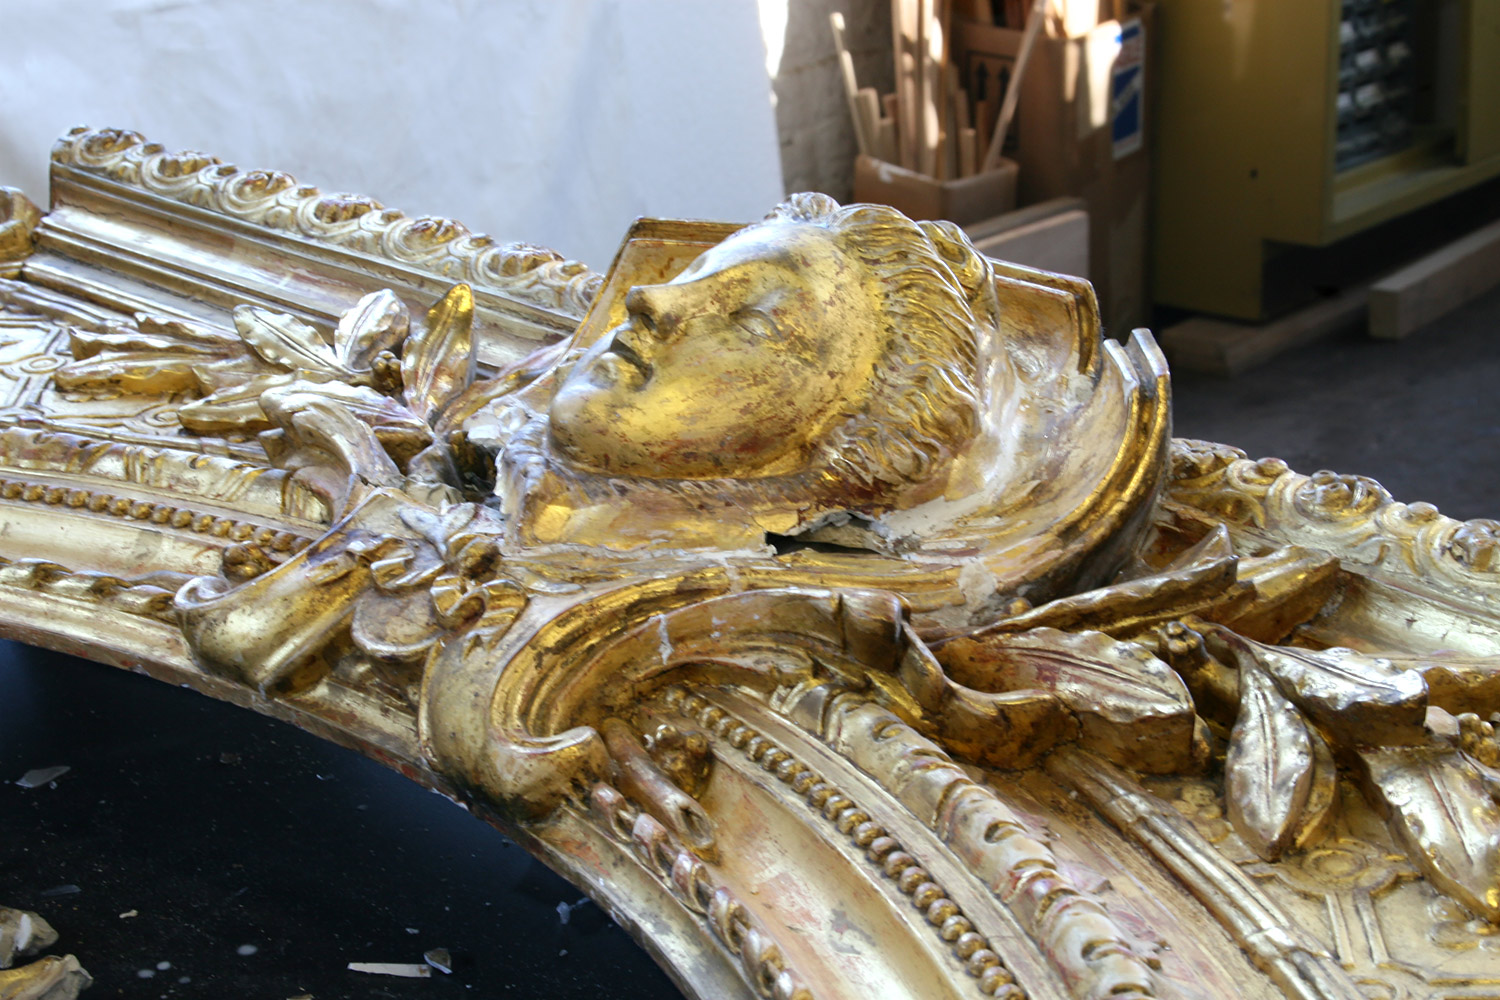 Gitwood frame conservation in progress - the center gilt figurative element was reattached